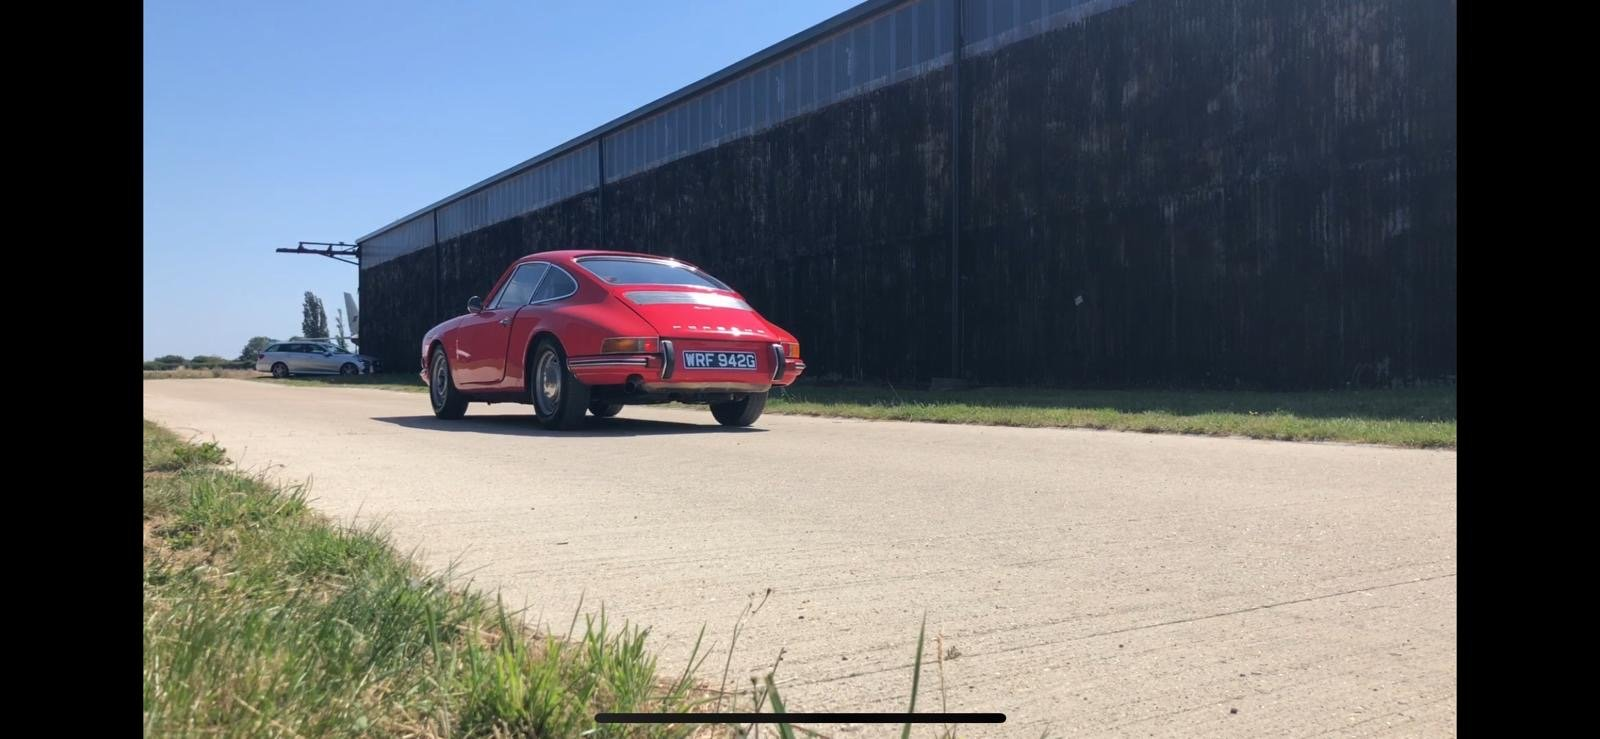 Porsche 911T RHD 1969 Sportamatic Coupe Red For Sale (picture 9 of 9)